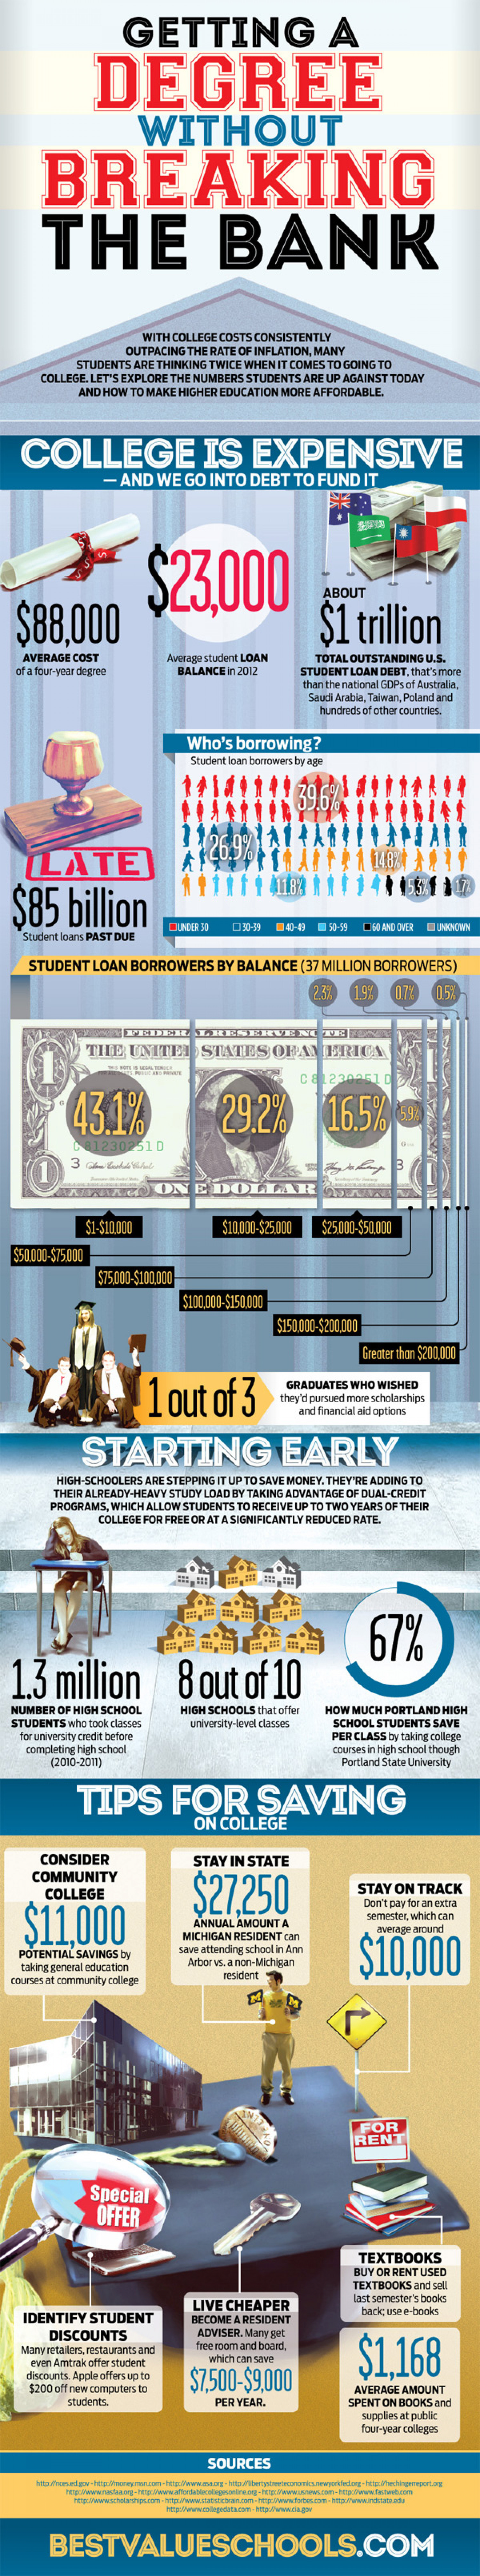 Getting a Degree without Breaking the Bank Infographic